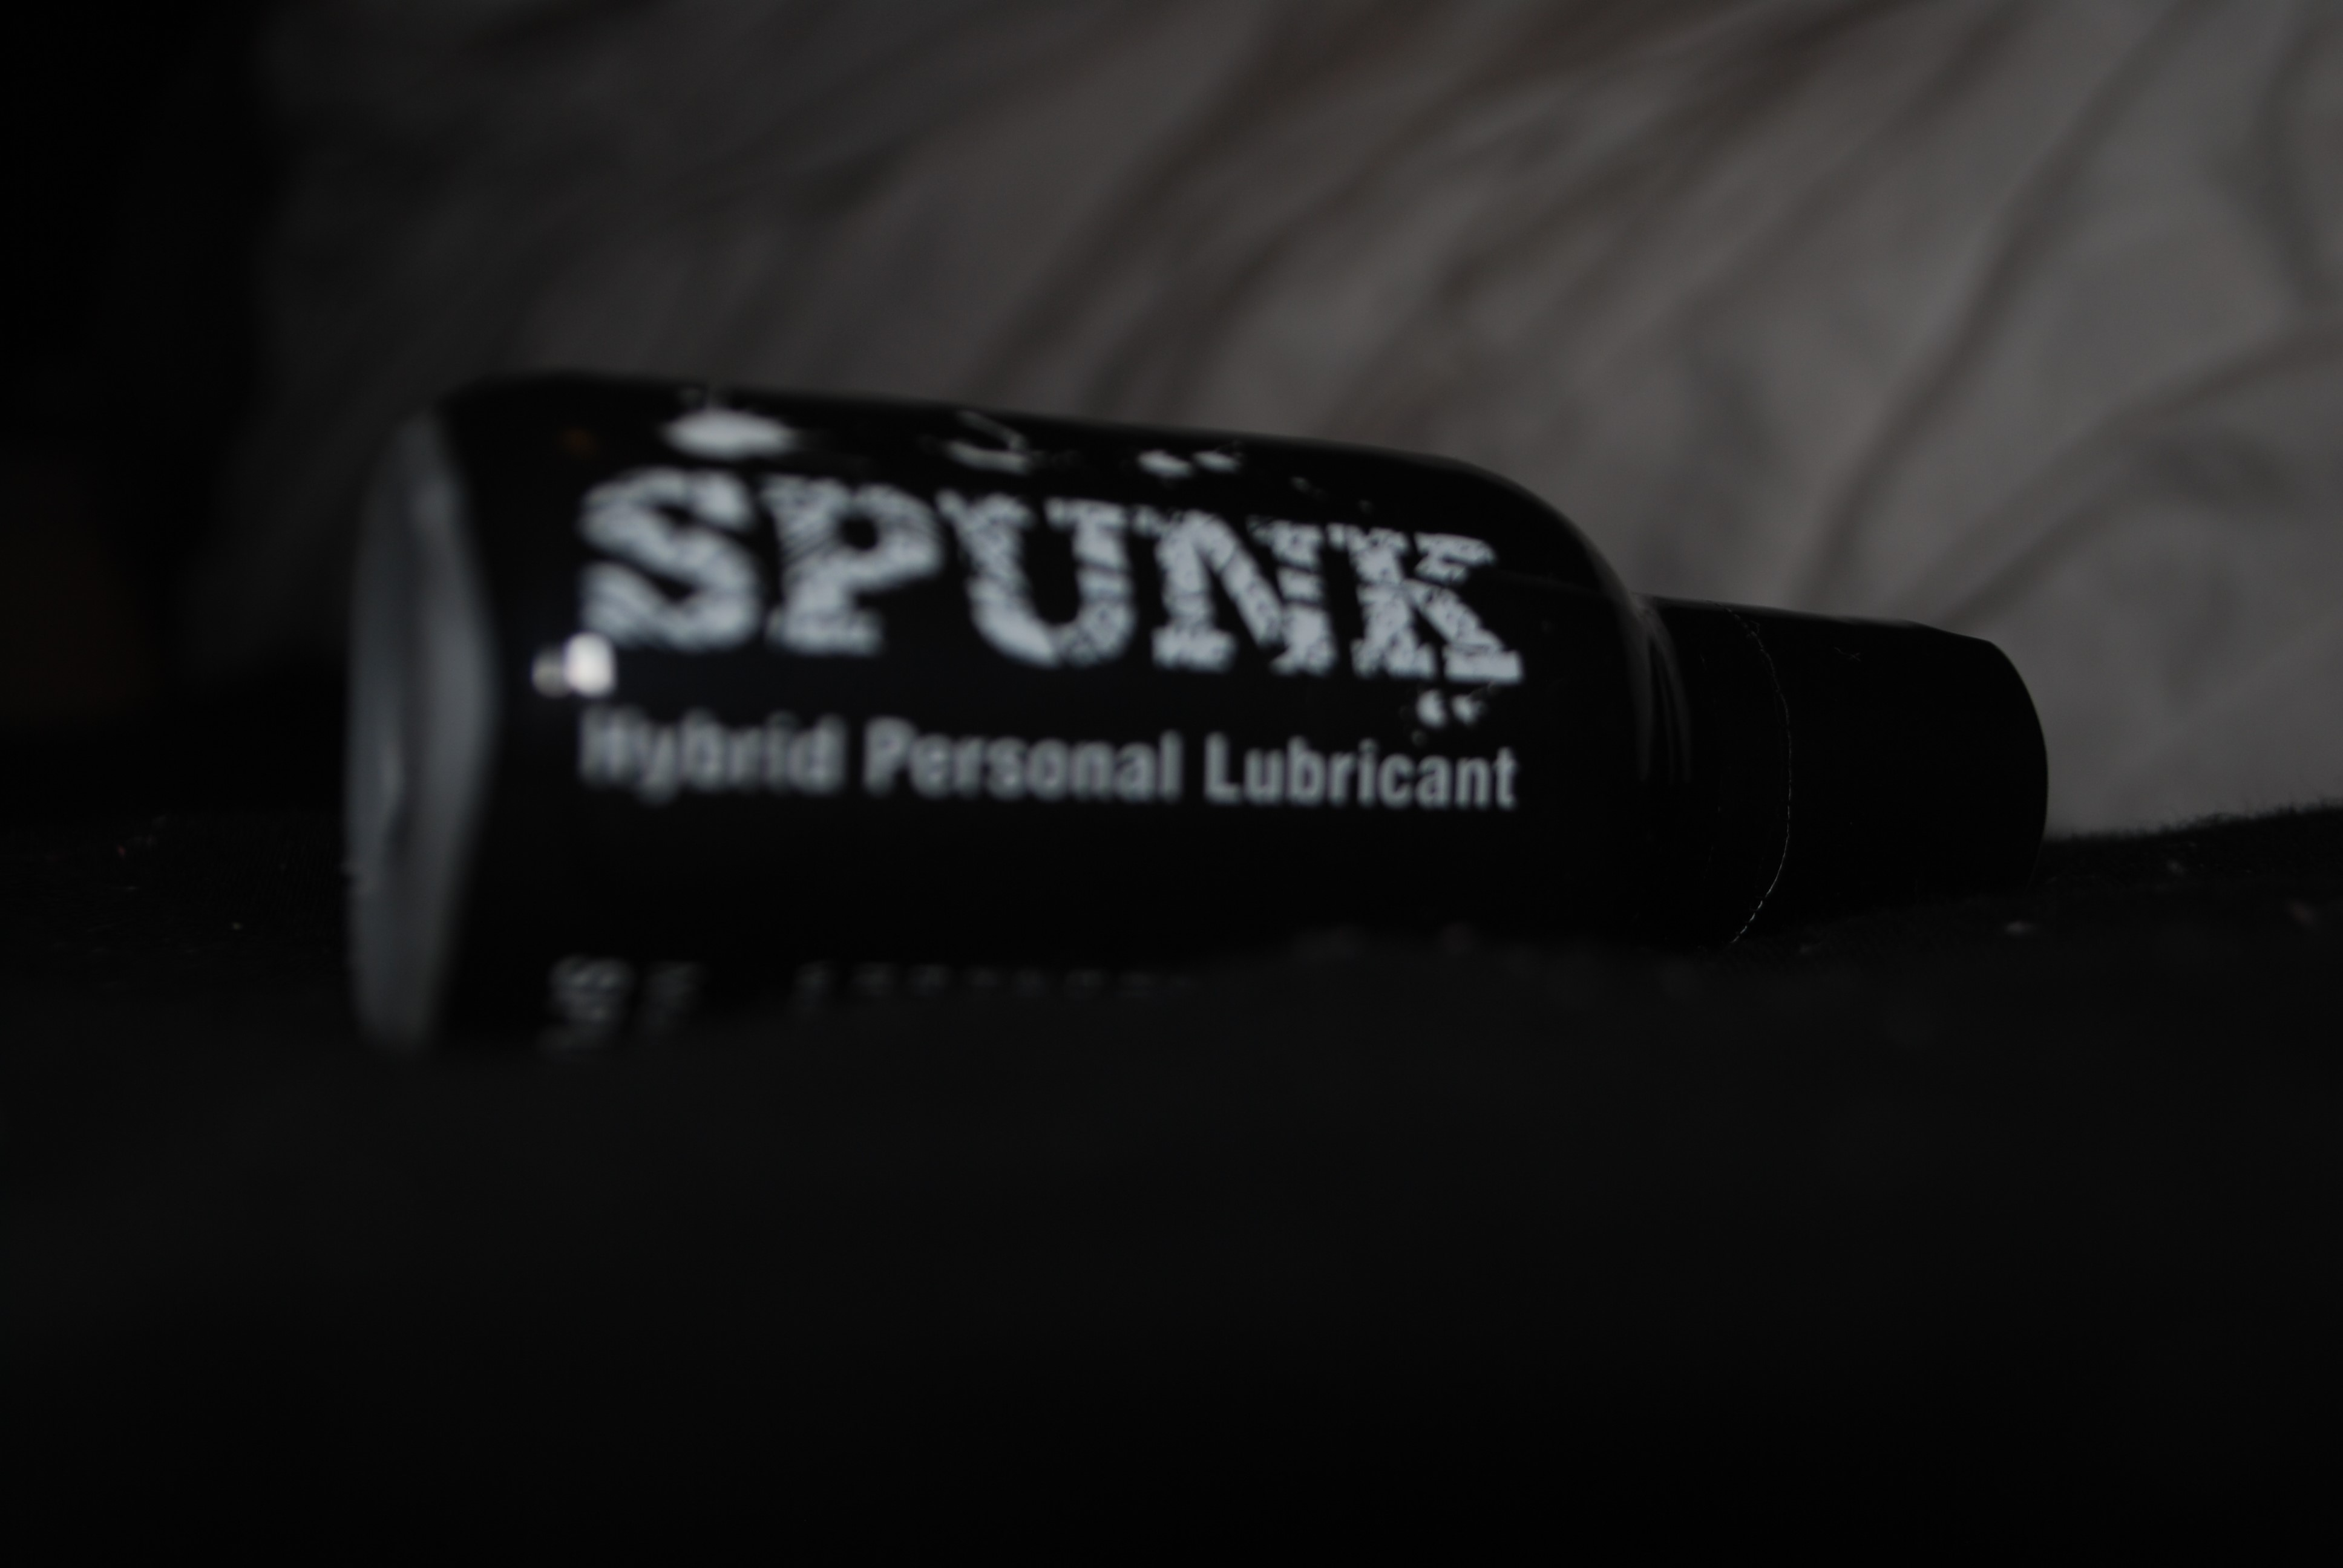 Spunk lube hybrid is a hybrid lubricant which is water based silicone. It  has the appearance and viscosity of cum hence the name Spunk Lube.